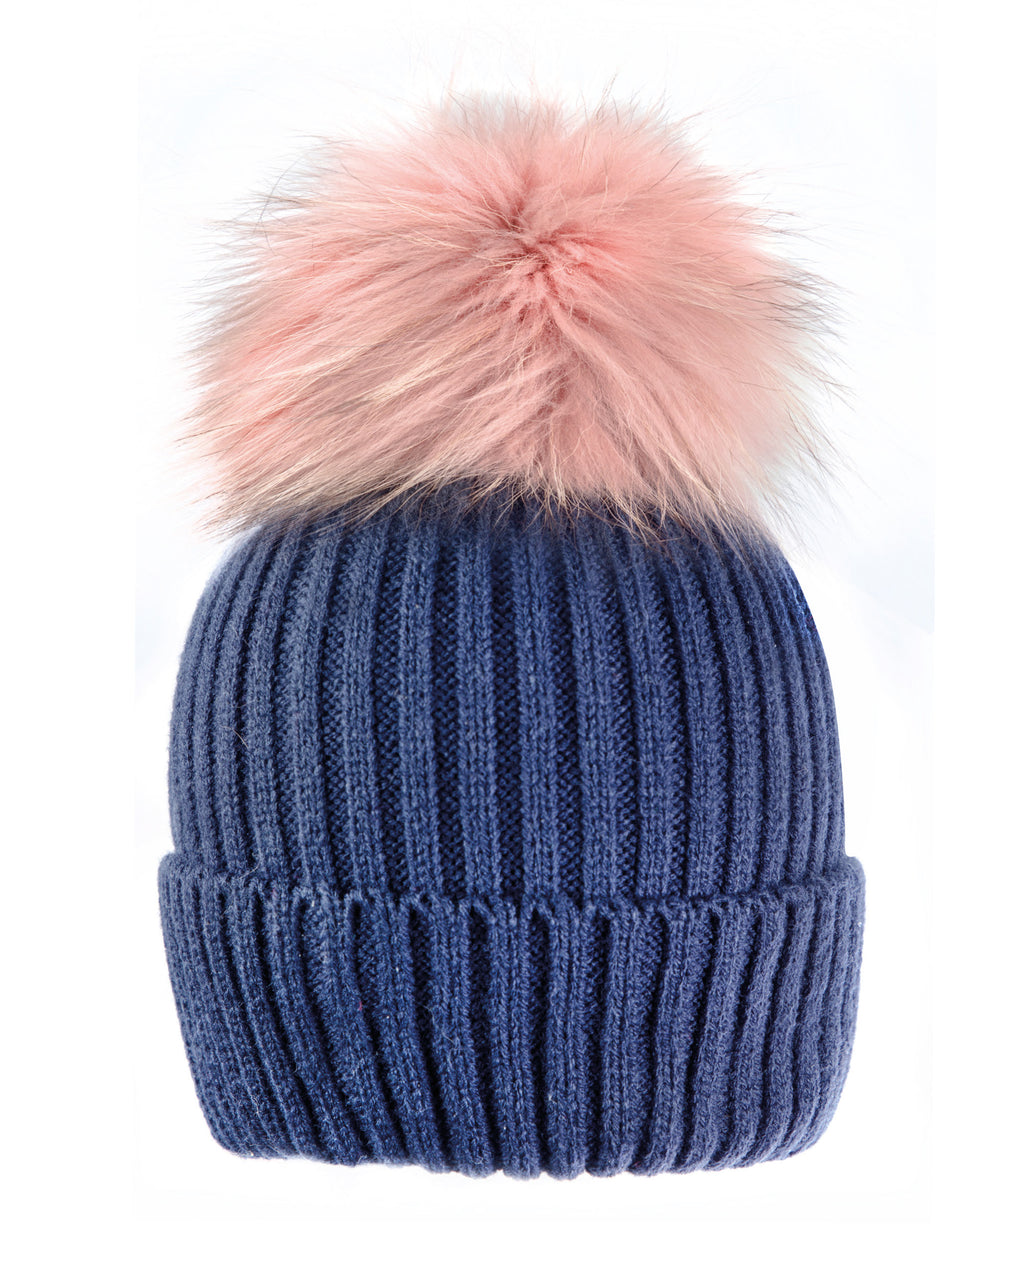 Blue/Pink Beanie Hat with exclusive Pom Pom